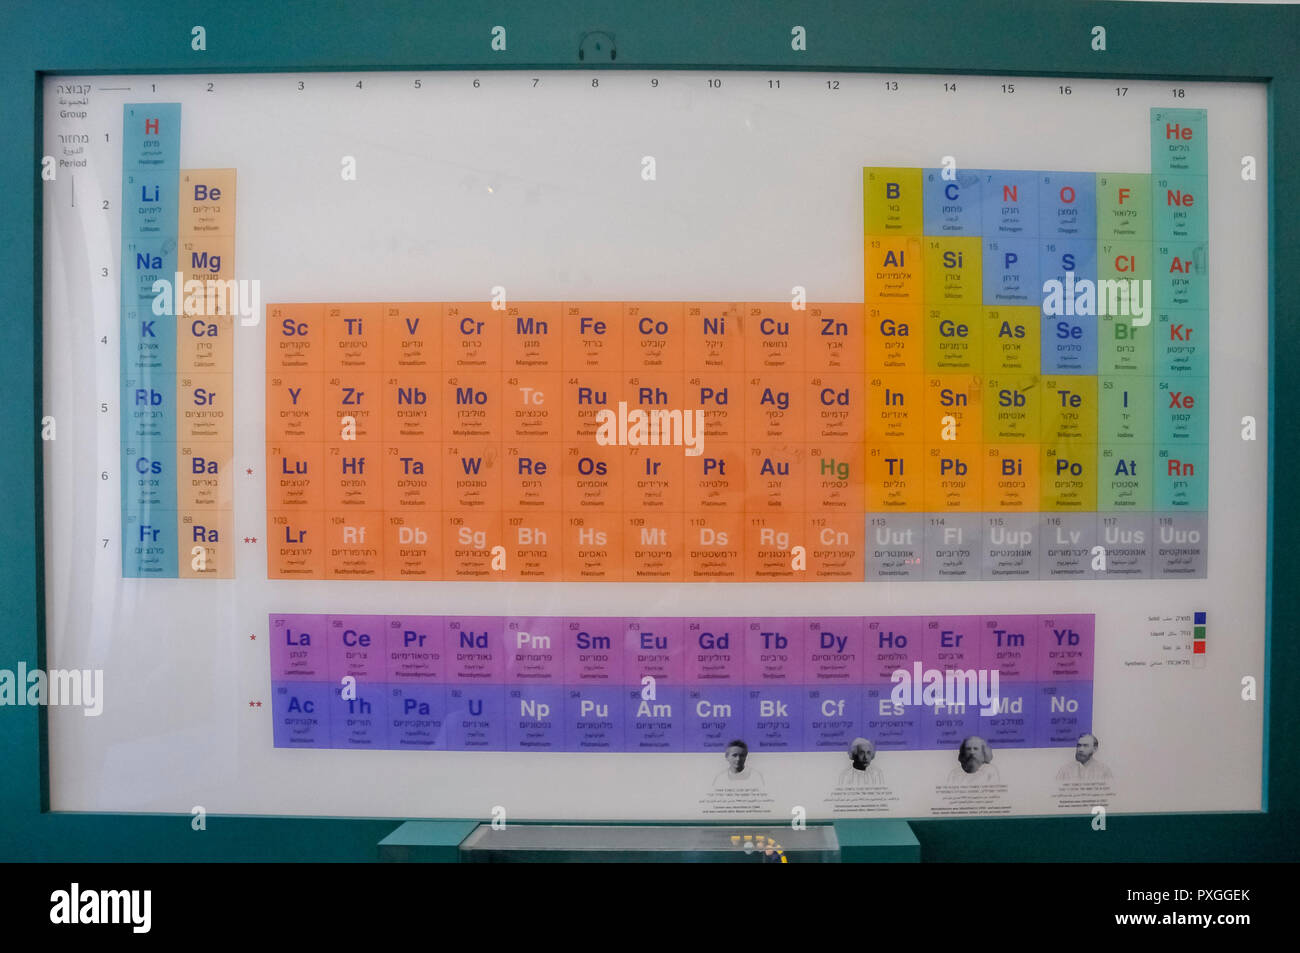 Colorful Periodic Table of elements at the Madatech, Israeli National Museum of Science Technology and Space, Haifa, Israel - Stock Image